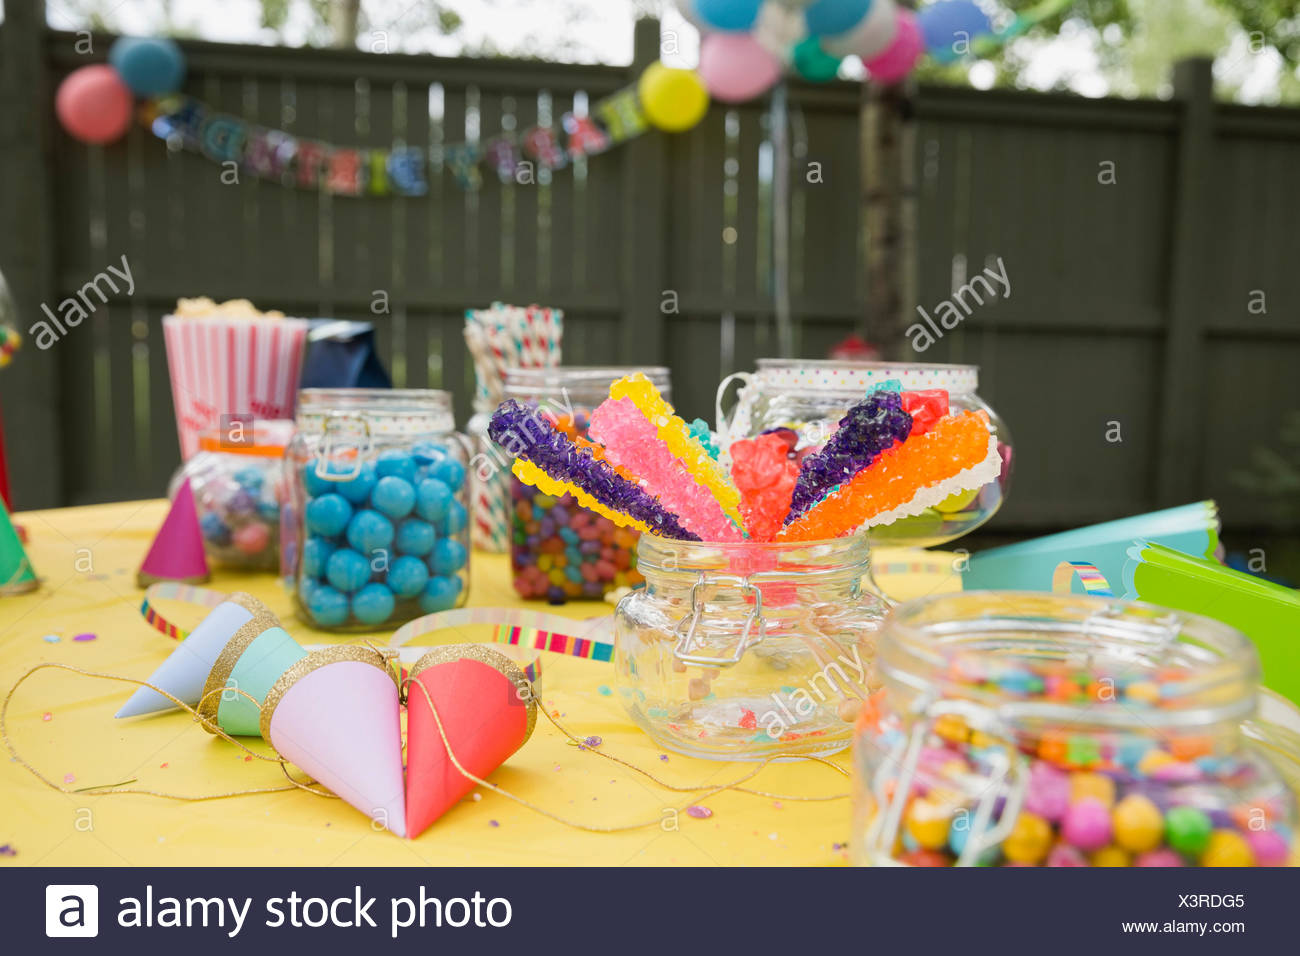 Candy party hats on birthday party table backyard - Stock Image